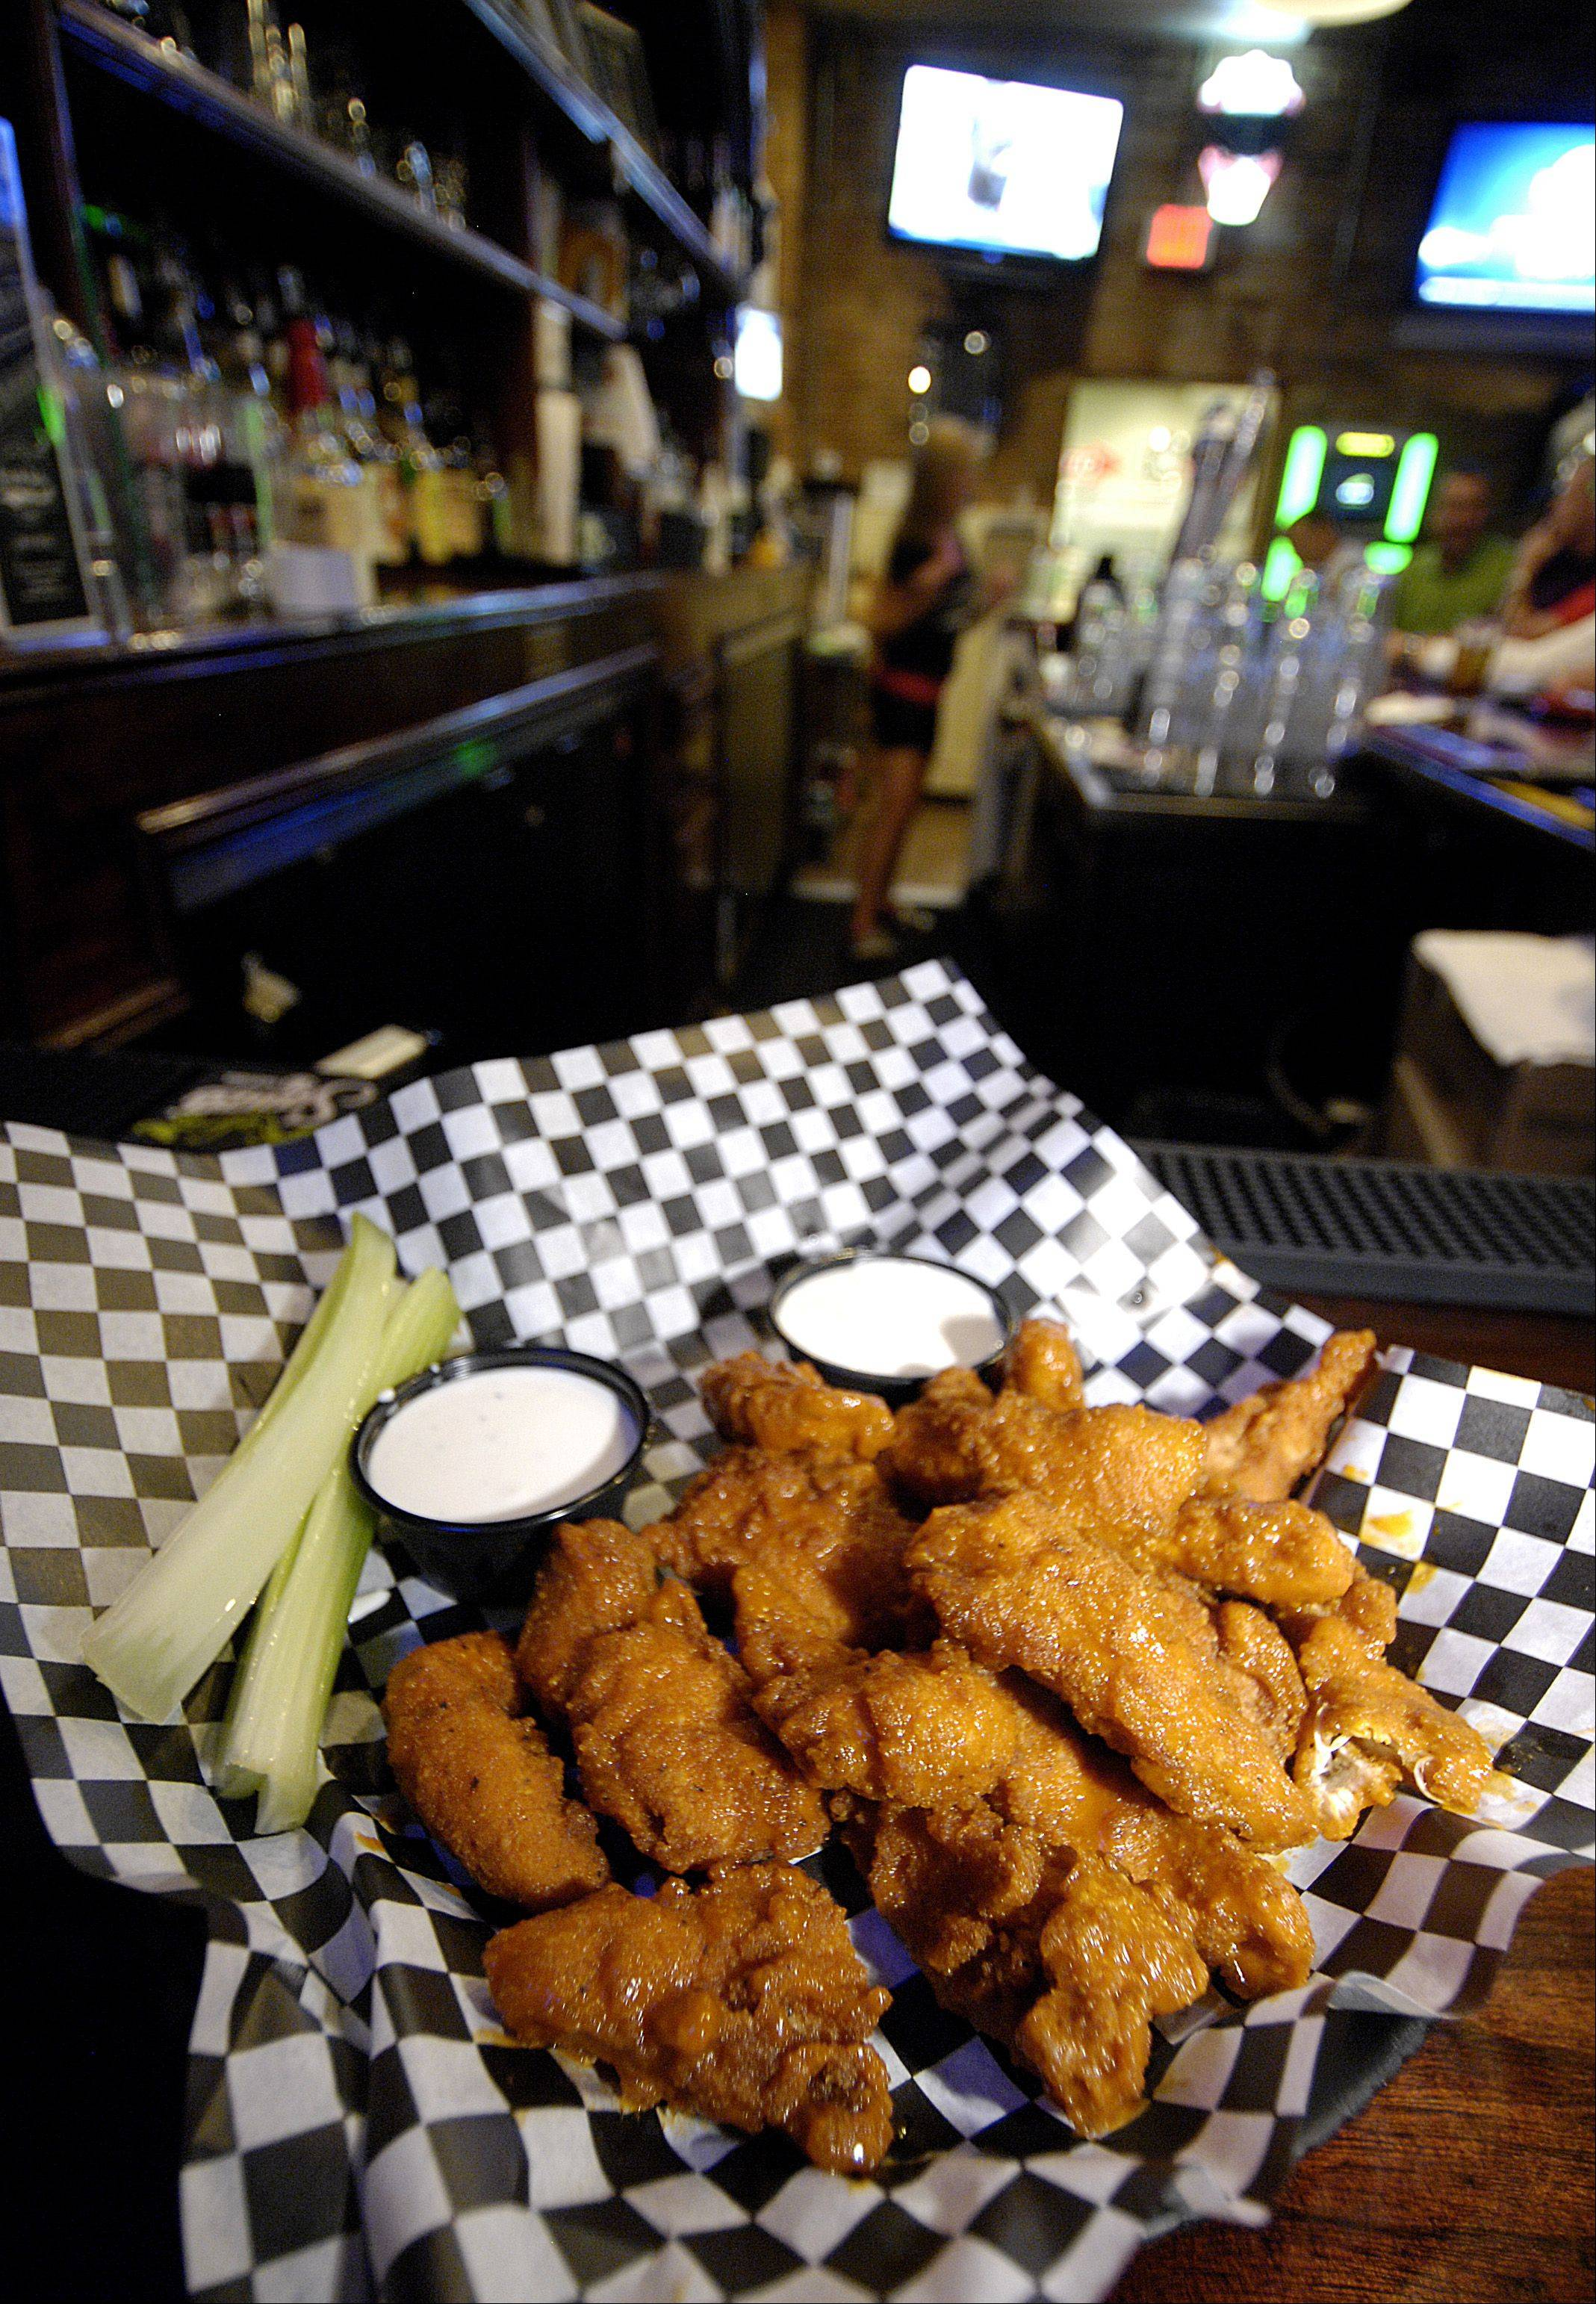 Hot wings should make the perfect snack for football season at North Side Sports Bar & Grill in Glen Ellyn.